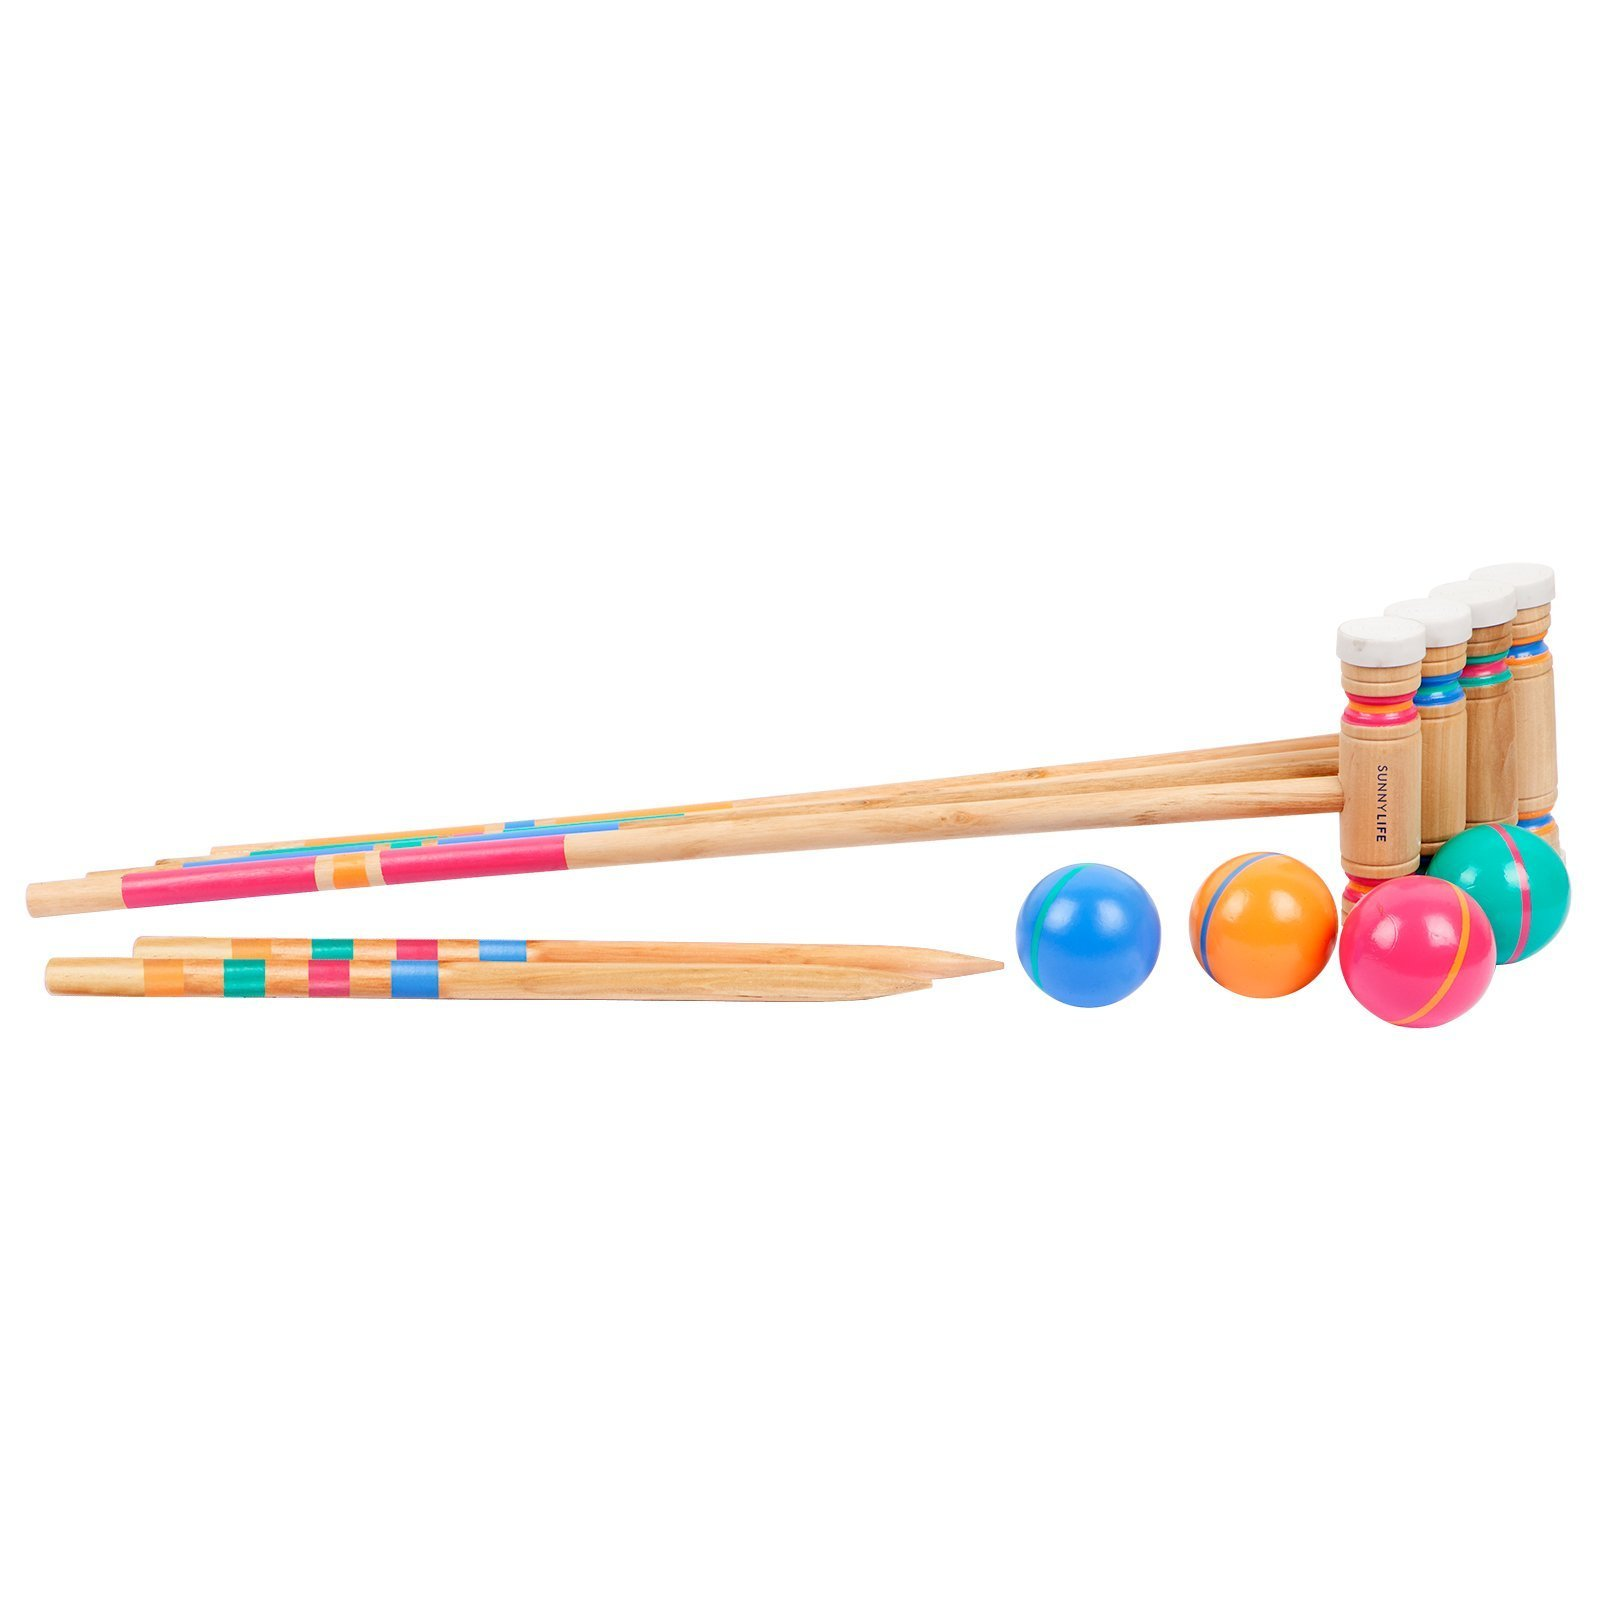 SunnyLIFE Full Croquet Equipment Set with Carry Bag for Portable Game Time - Catalina Multi